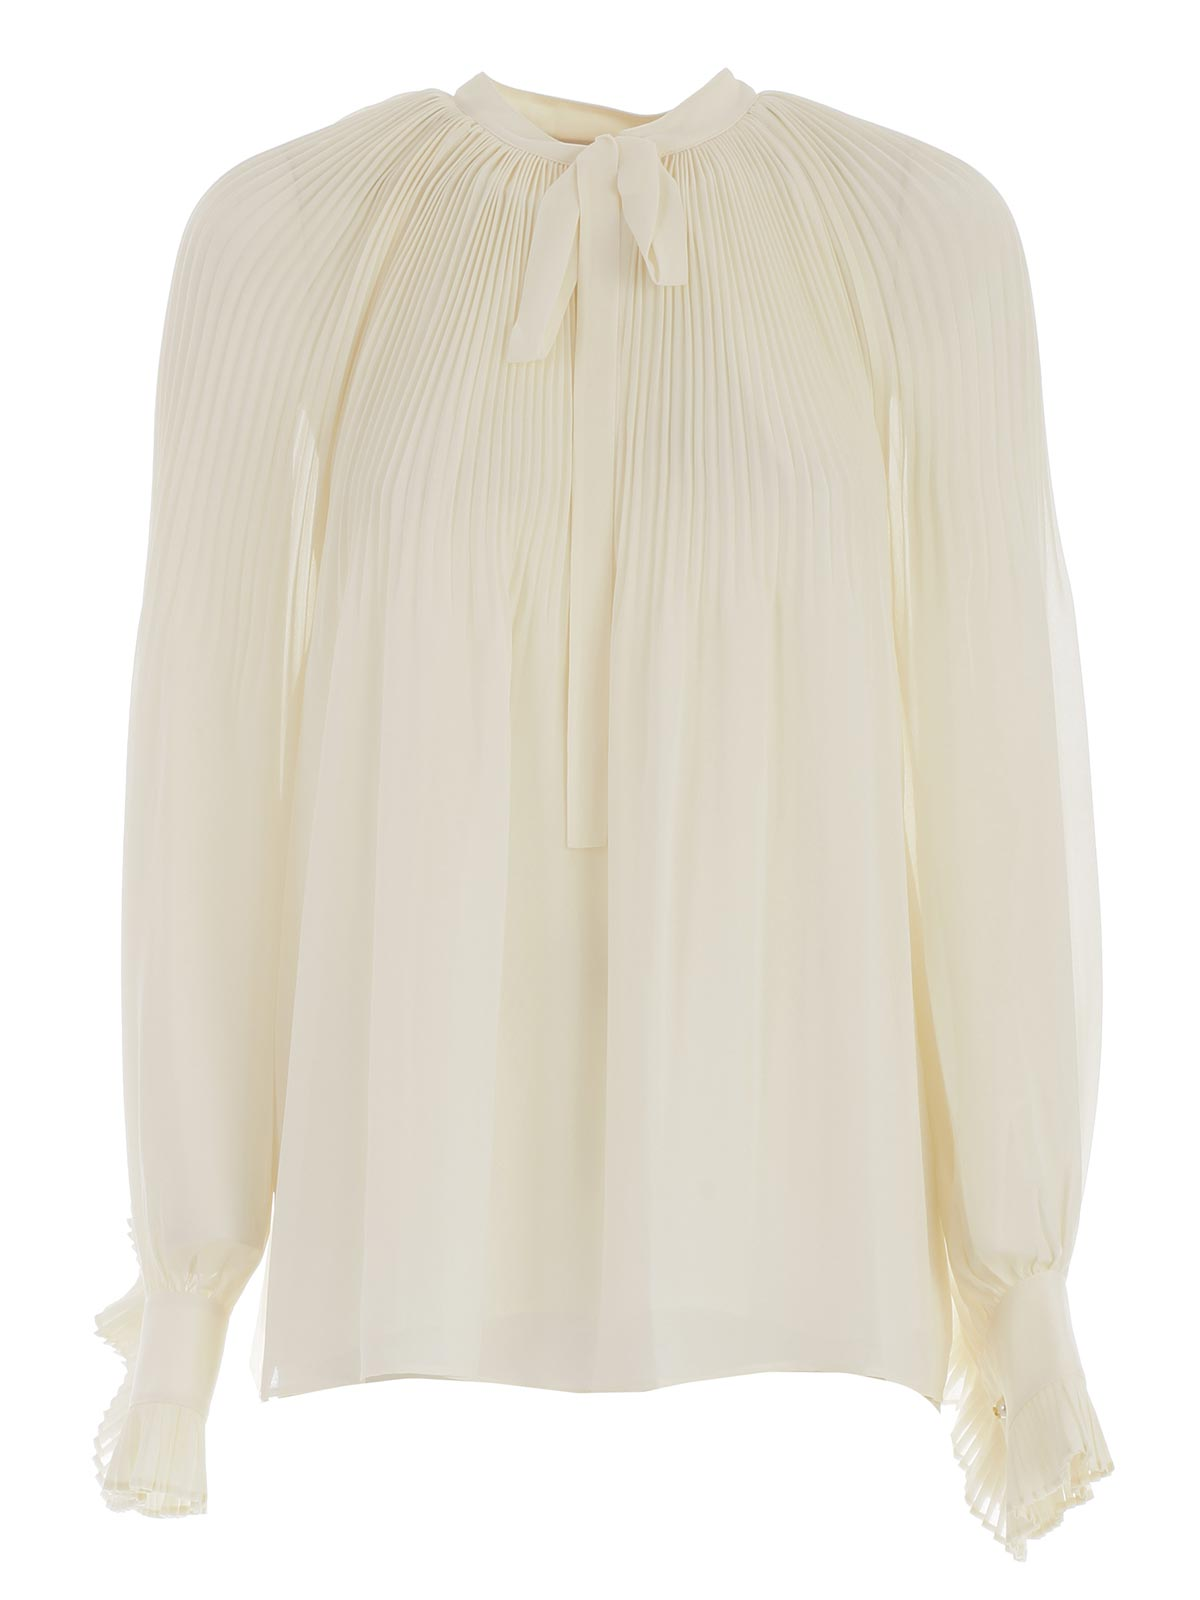 Picture of TORY BURCH TOP